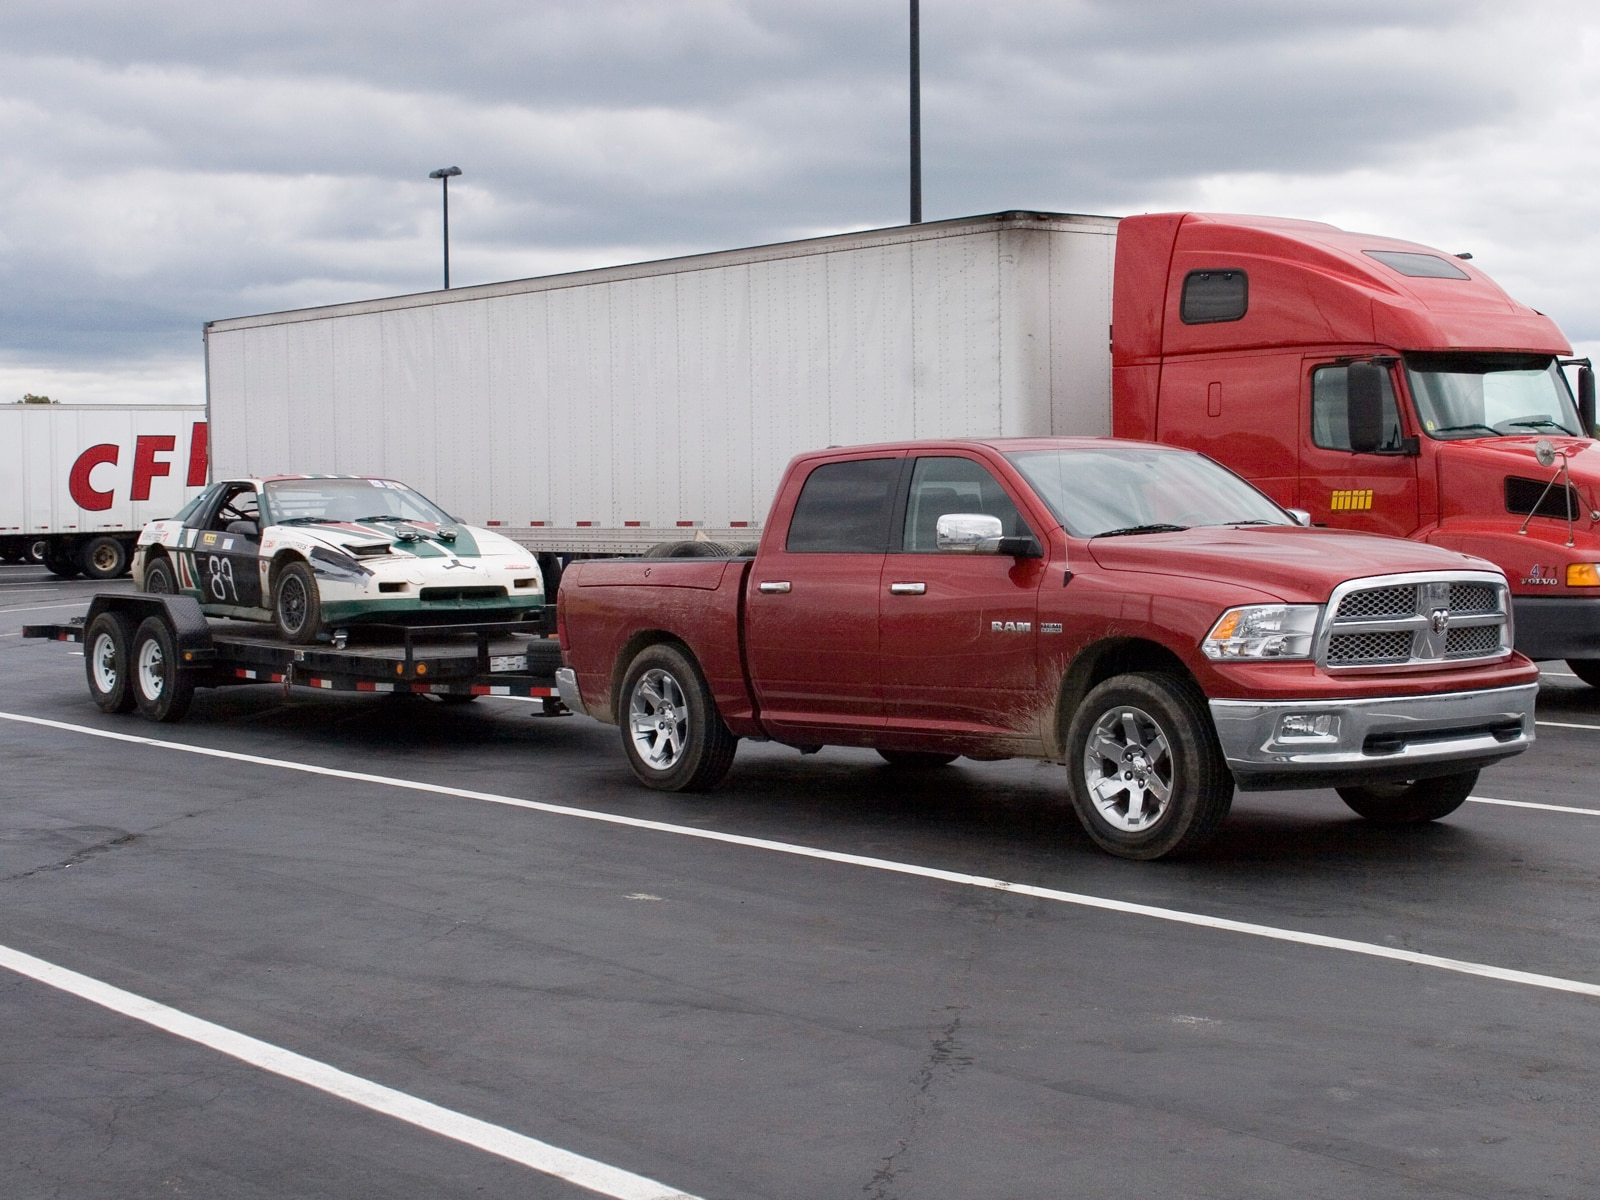 0910 02 Z 2009 Dodge Ram 1500 Towing